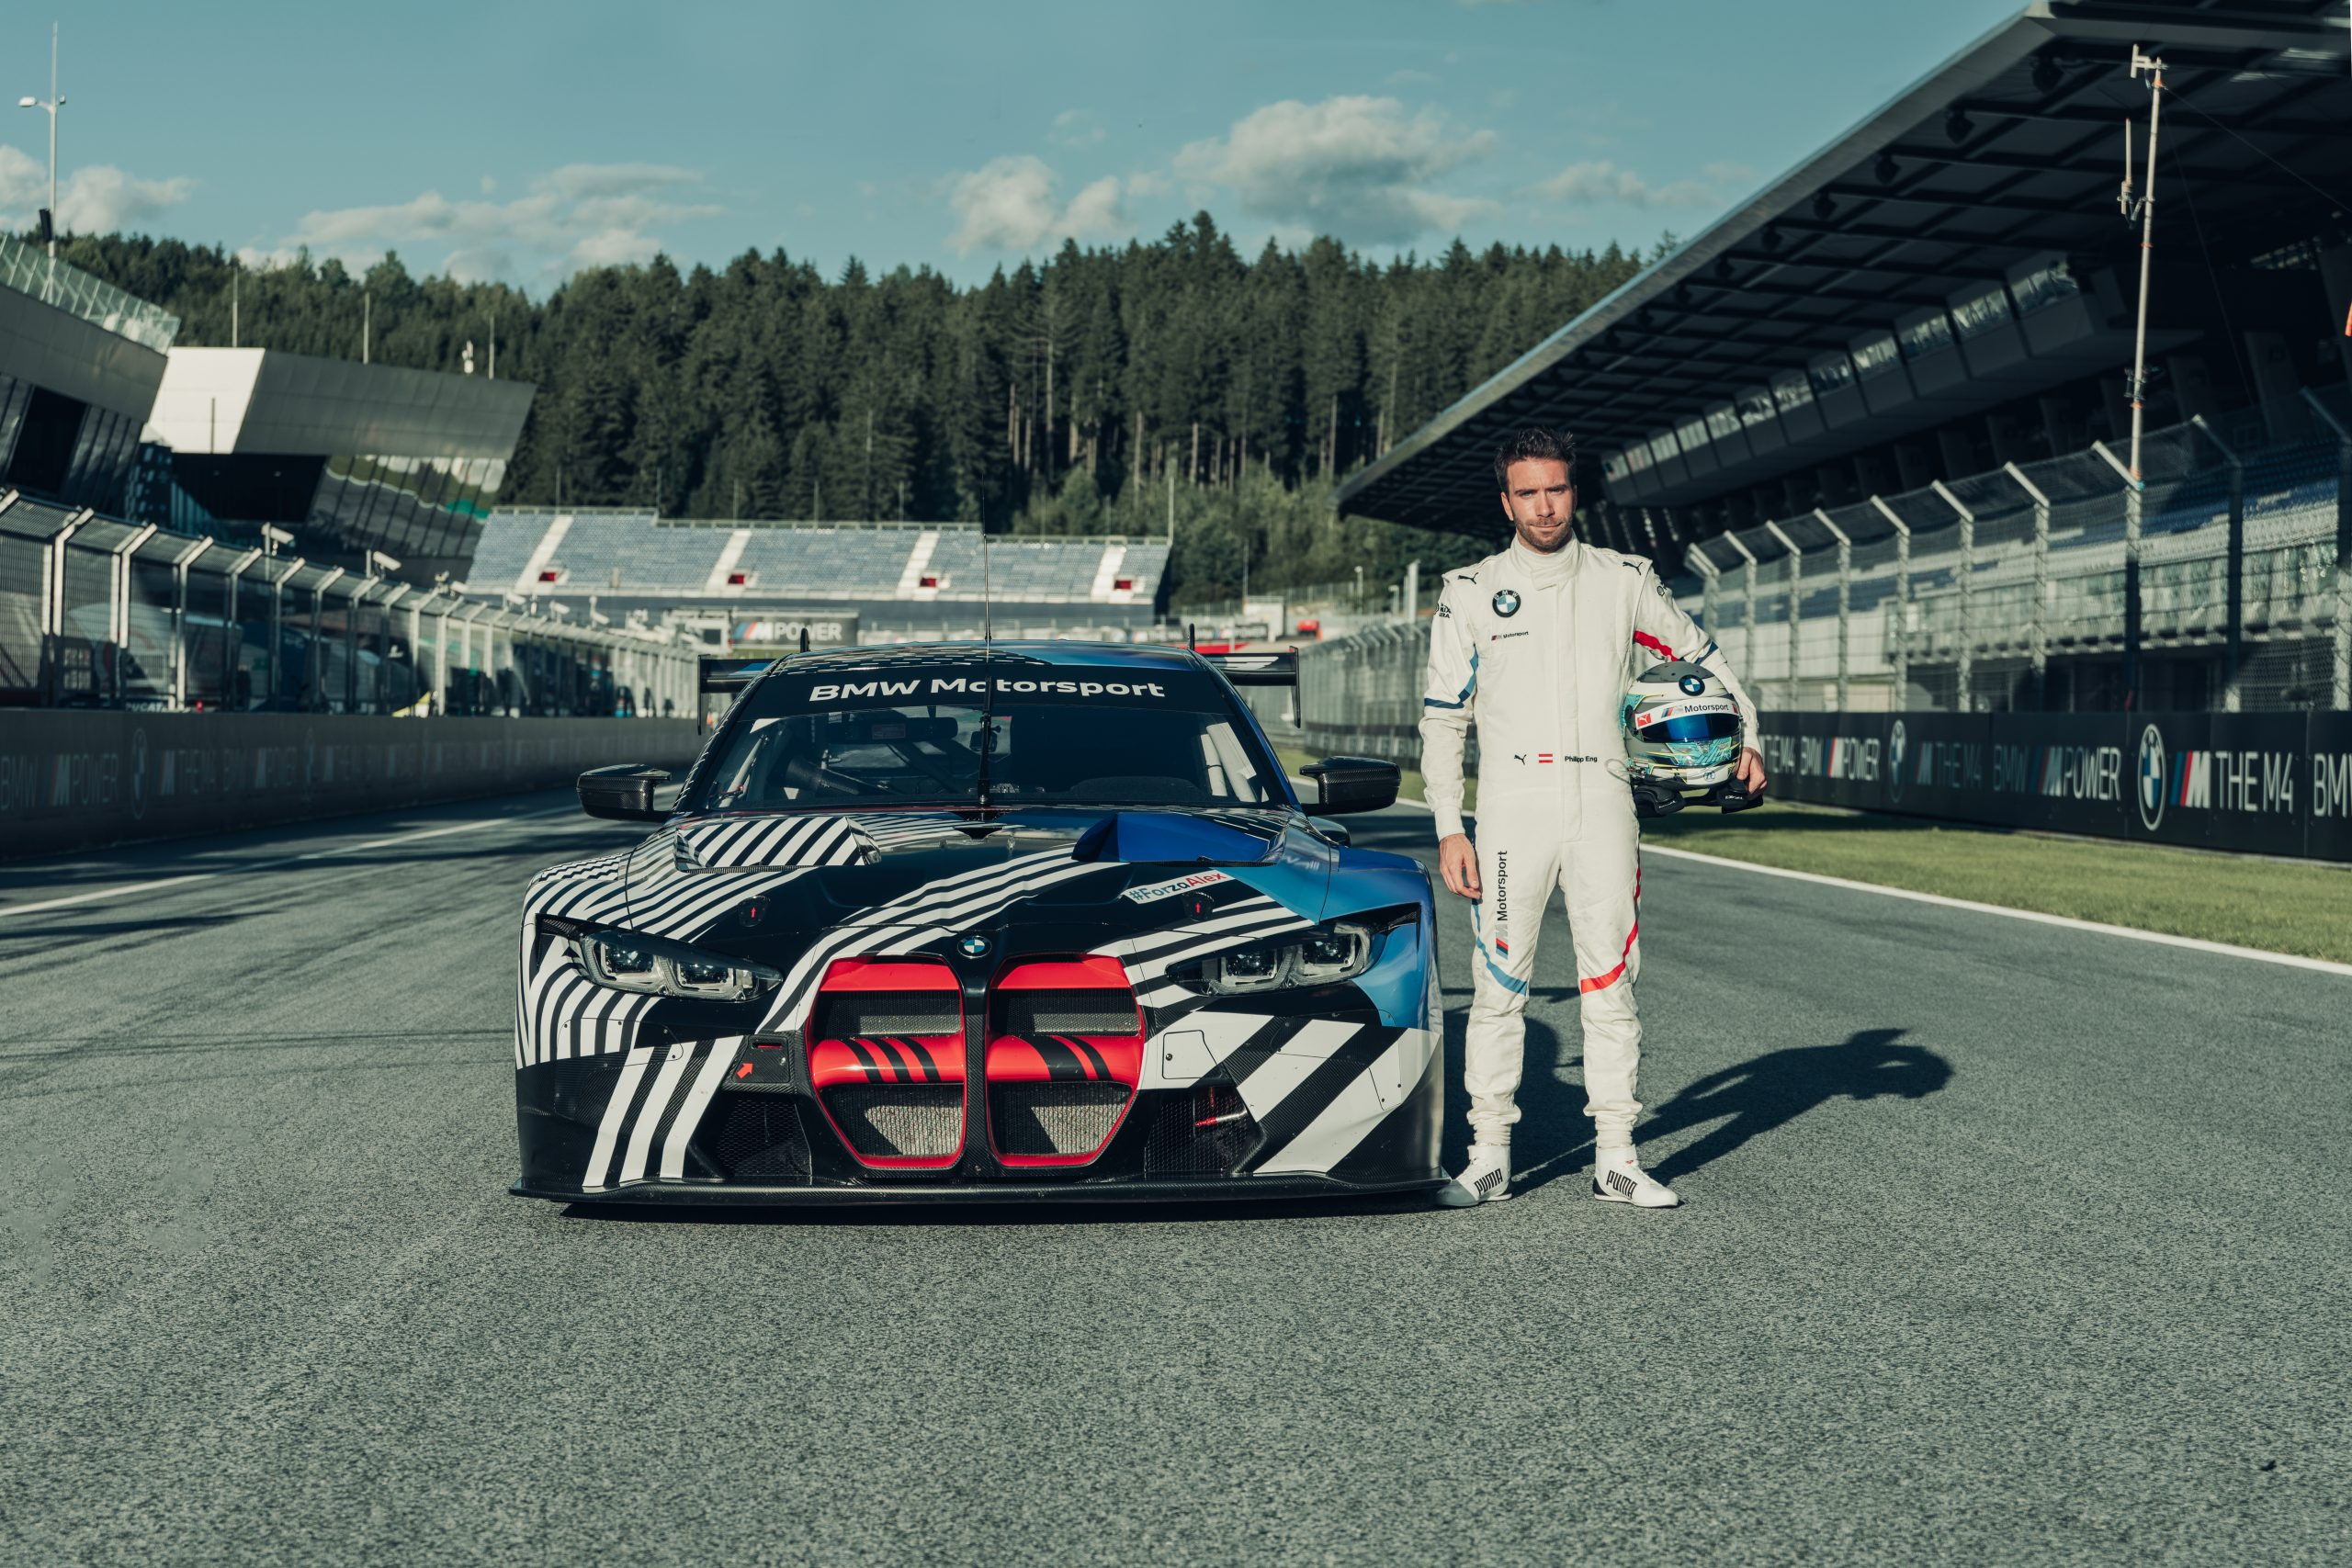 2021 BMW M4 GT3 prototype Red Bull Ring August 2020 Philipp Eng